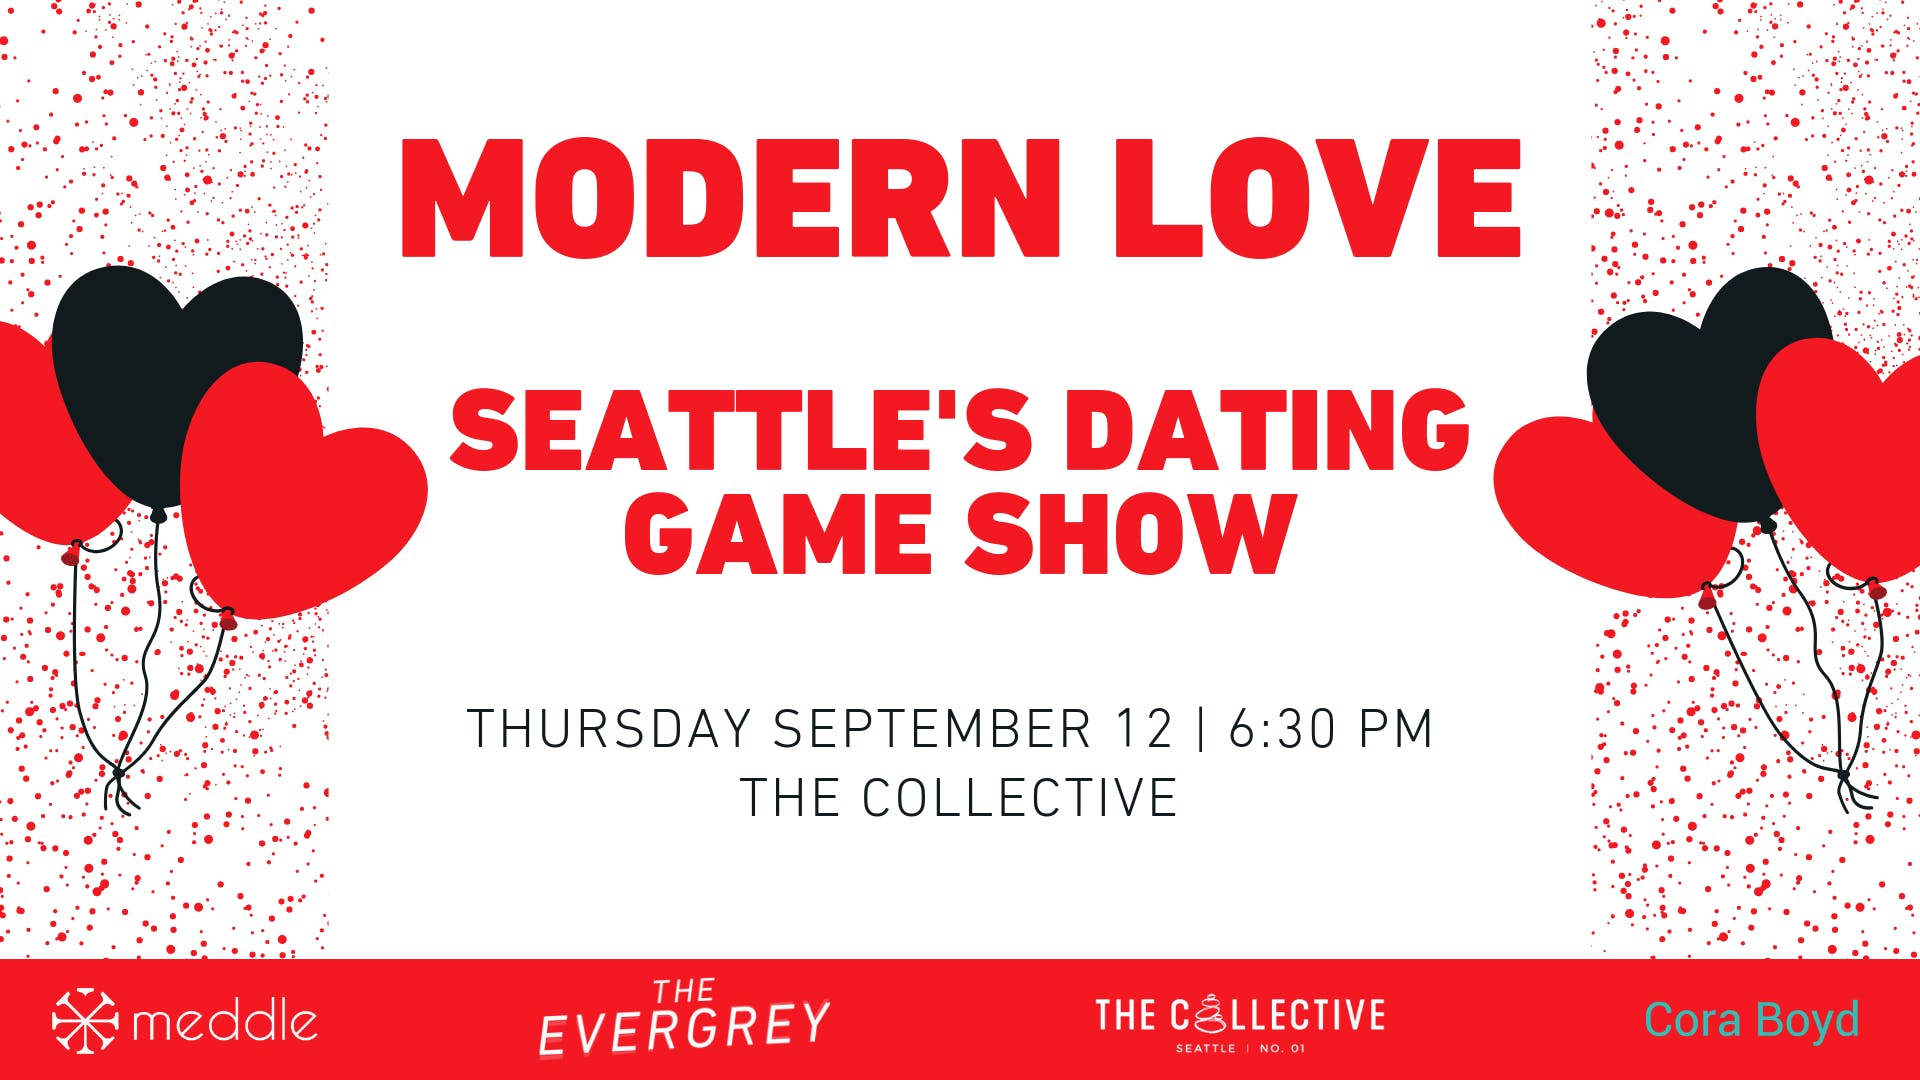 Modern Love: Seattle's Dating Game Show banner